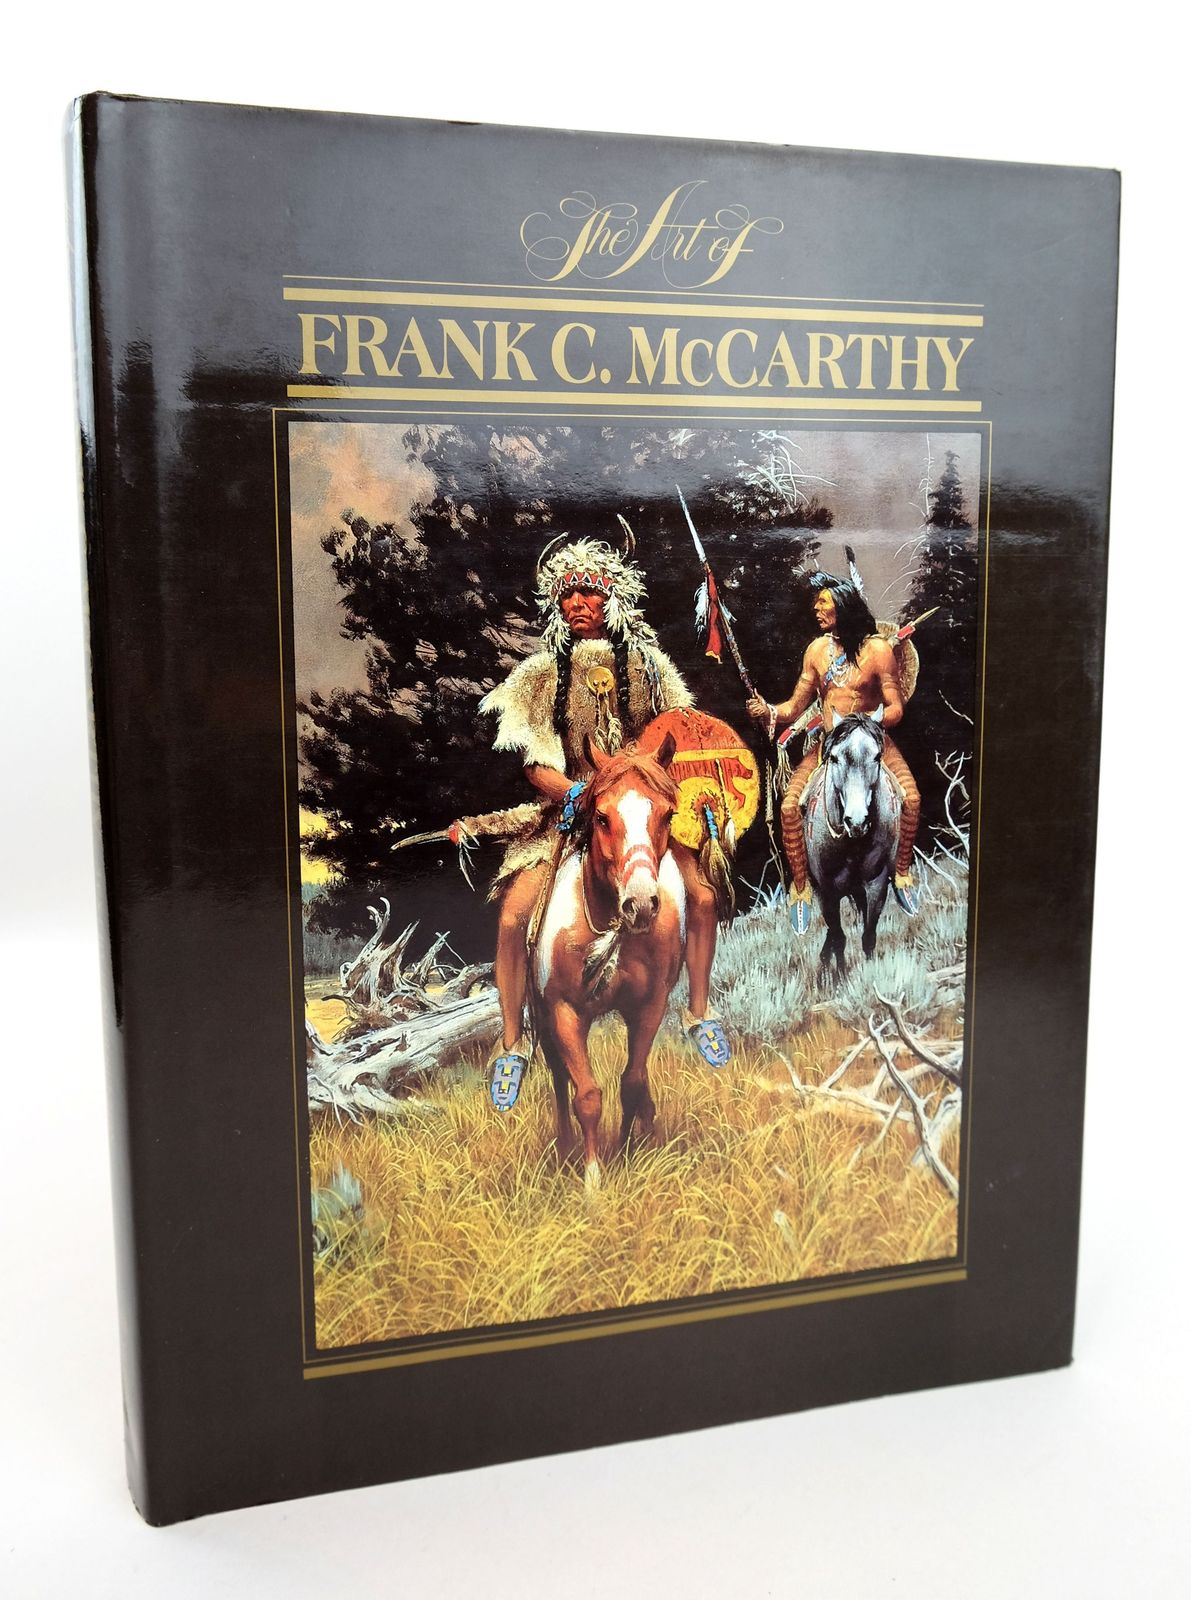 Photo of THE ART OF FRANK C. MCCARTHY written by Kelton, Elmer illustrated by McCarthy, Frank C. published by William Morrow & Company Inc (STOCK CODE: 1818964)  for sale by Stella & Rose's Books